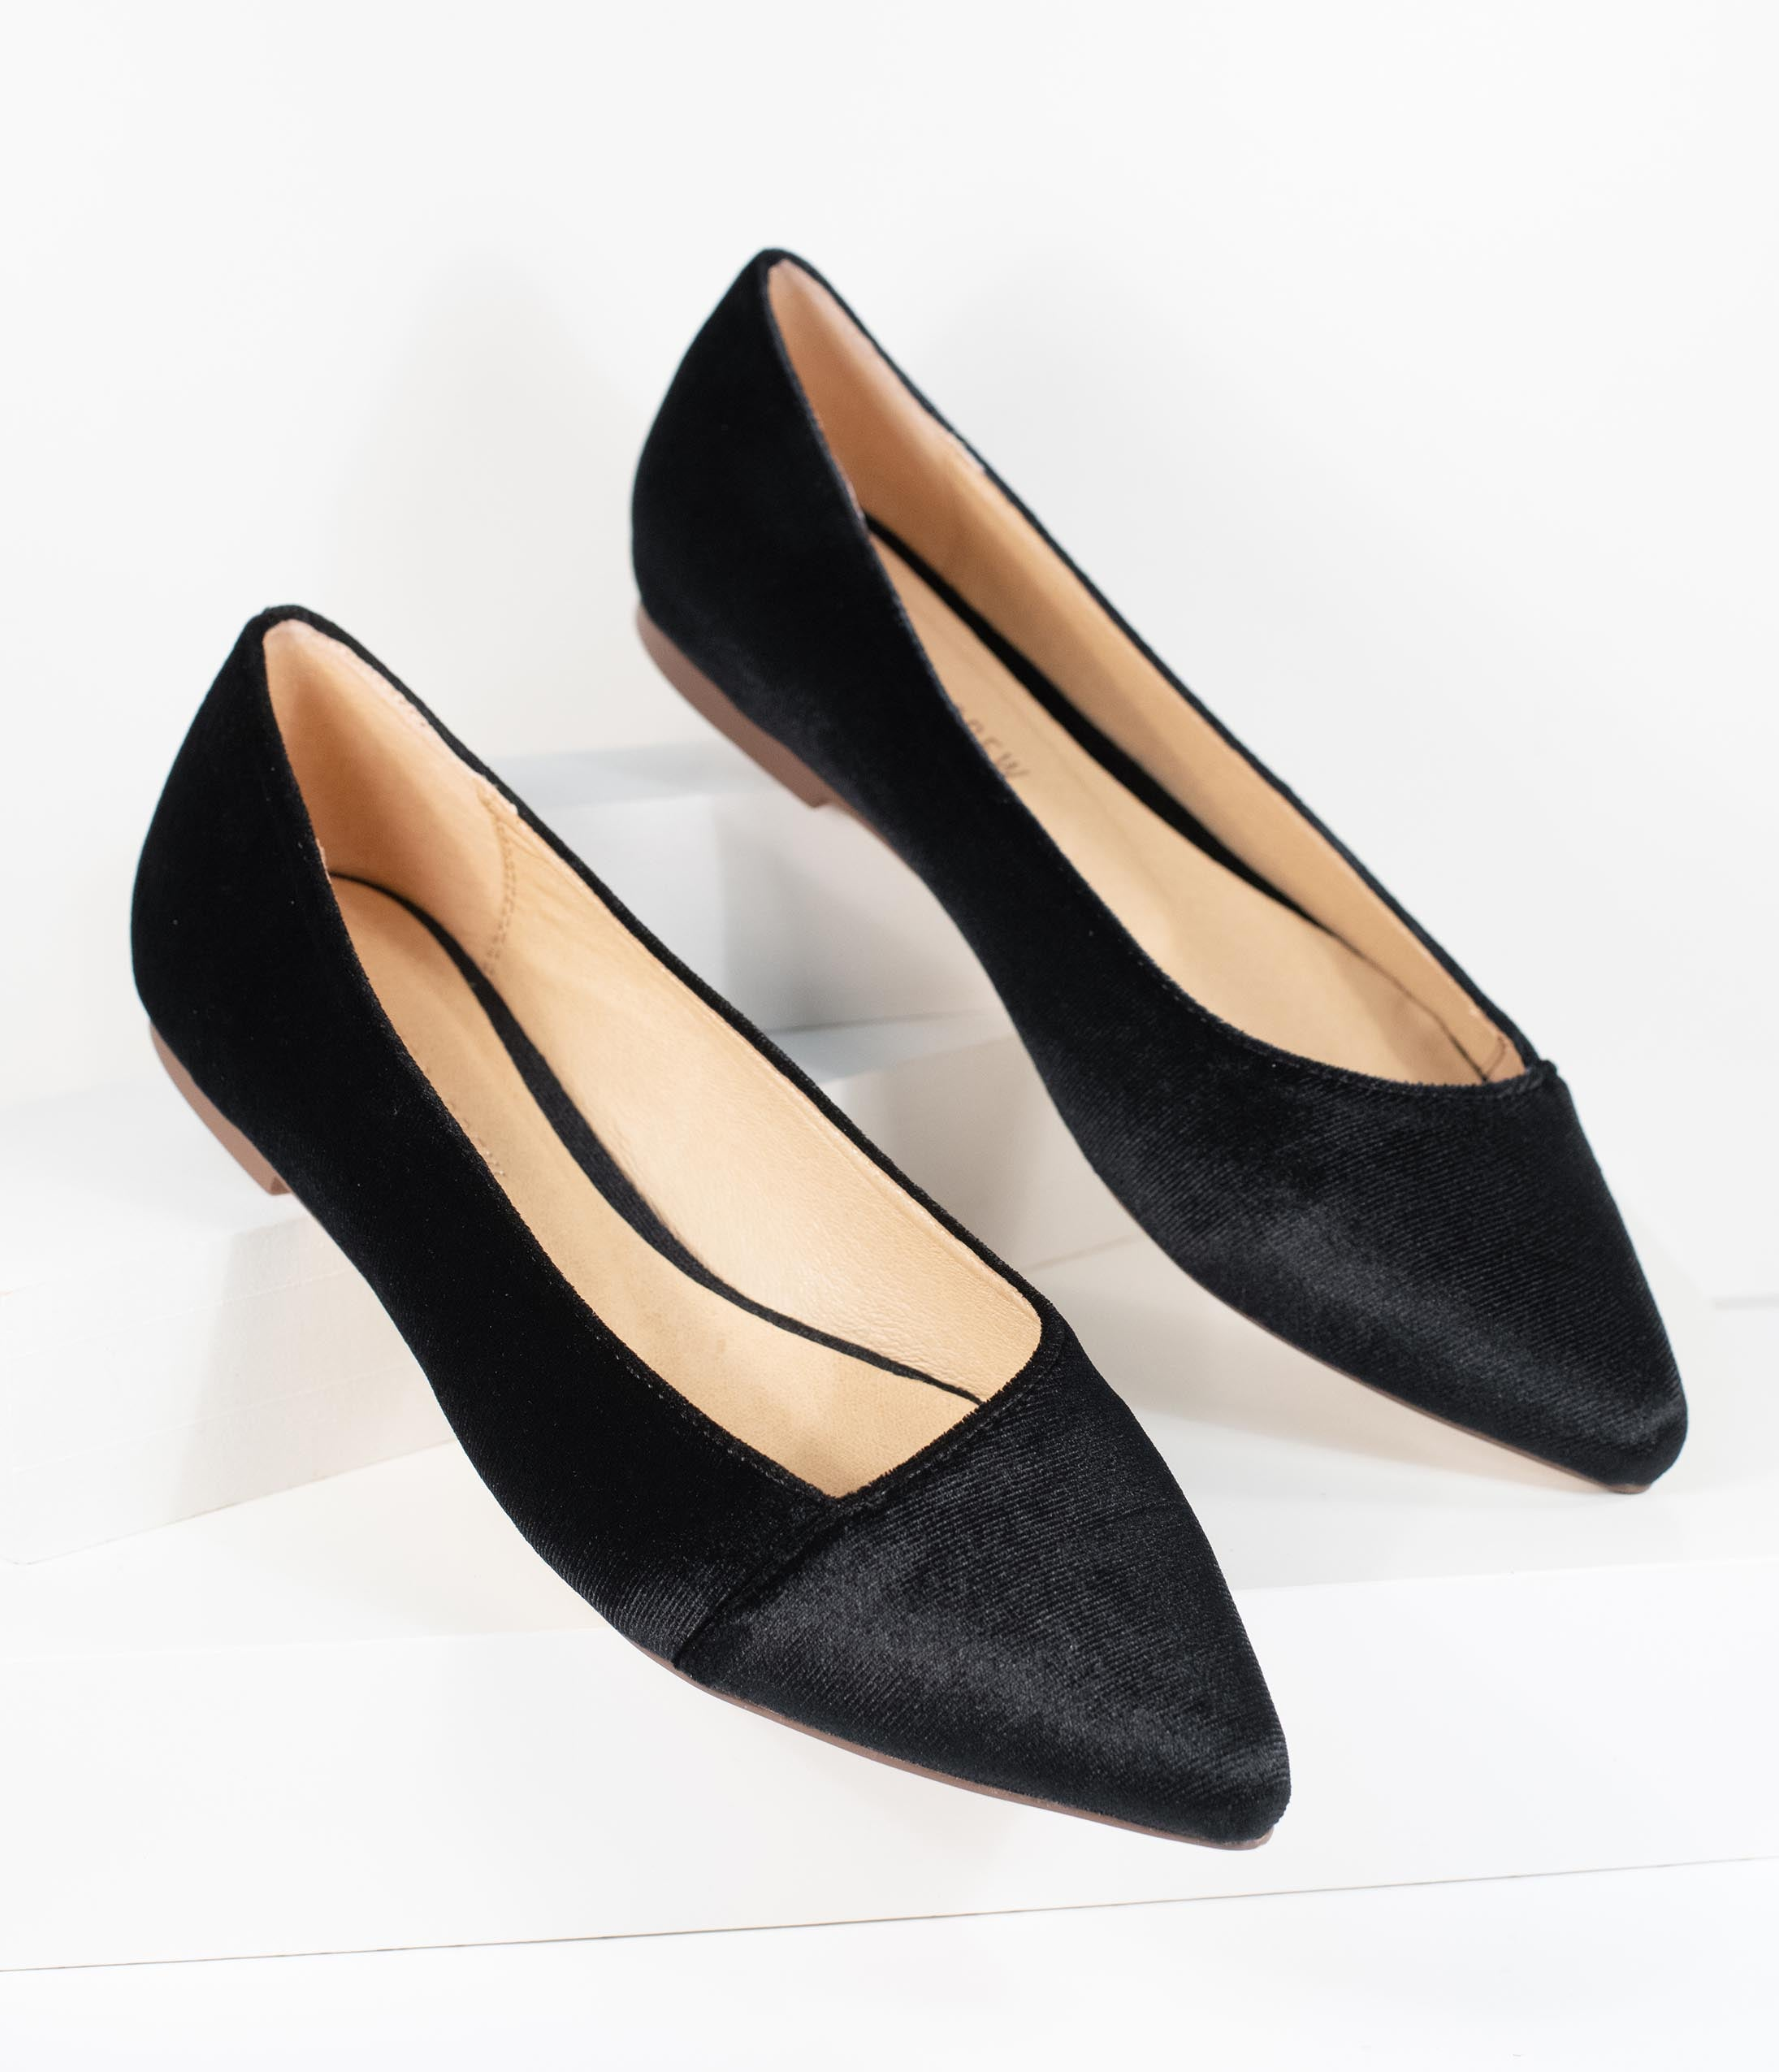 Retro Vintage Flats and Low Heel Shoes Chelsea Crew Black Velvet Pointed Toe Pammy Flats $68.00 AT vintagedancer.com